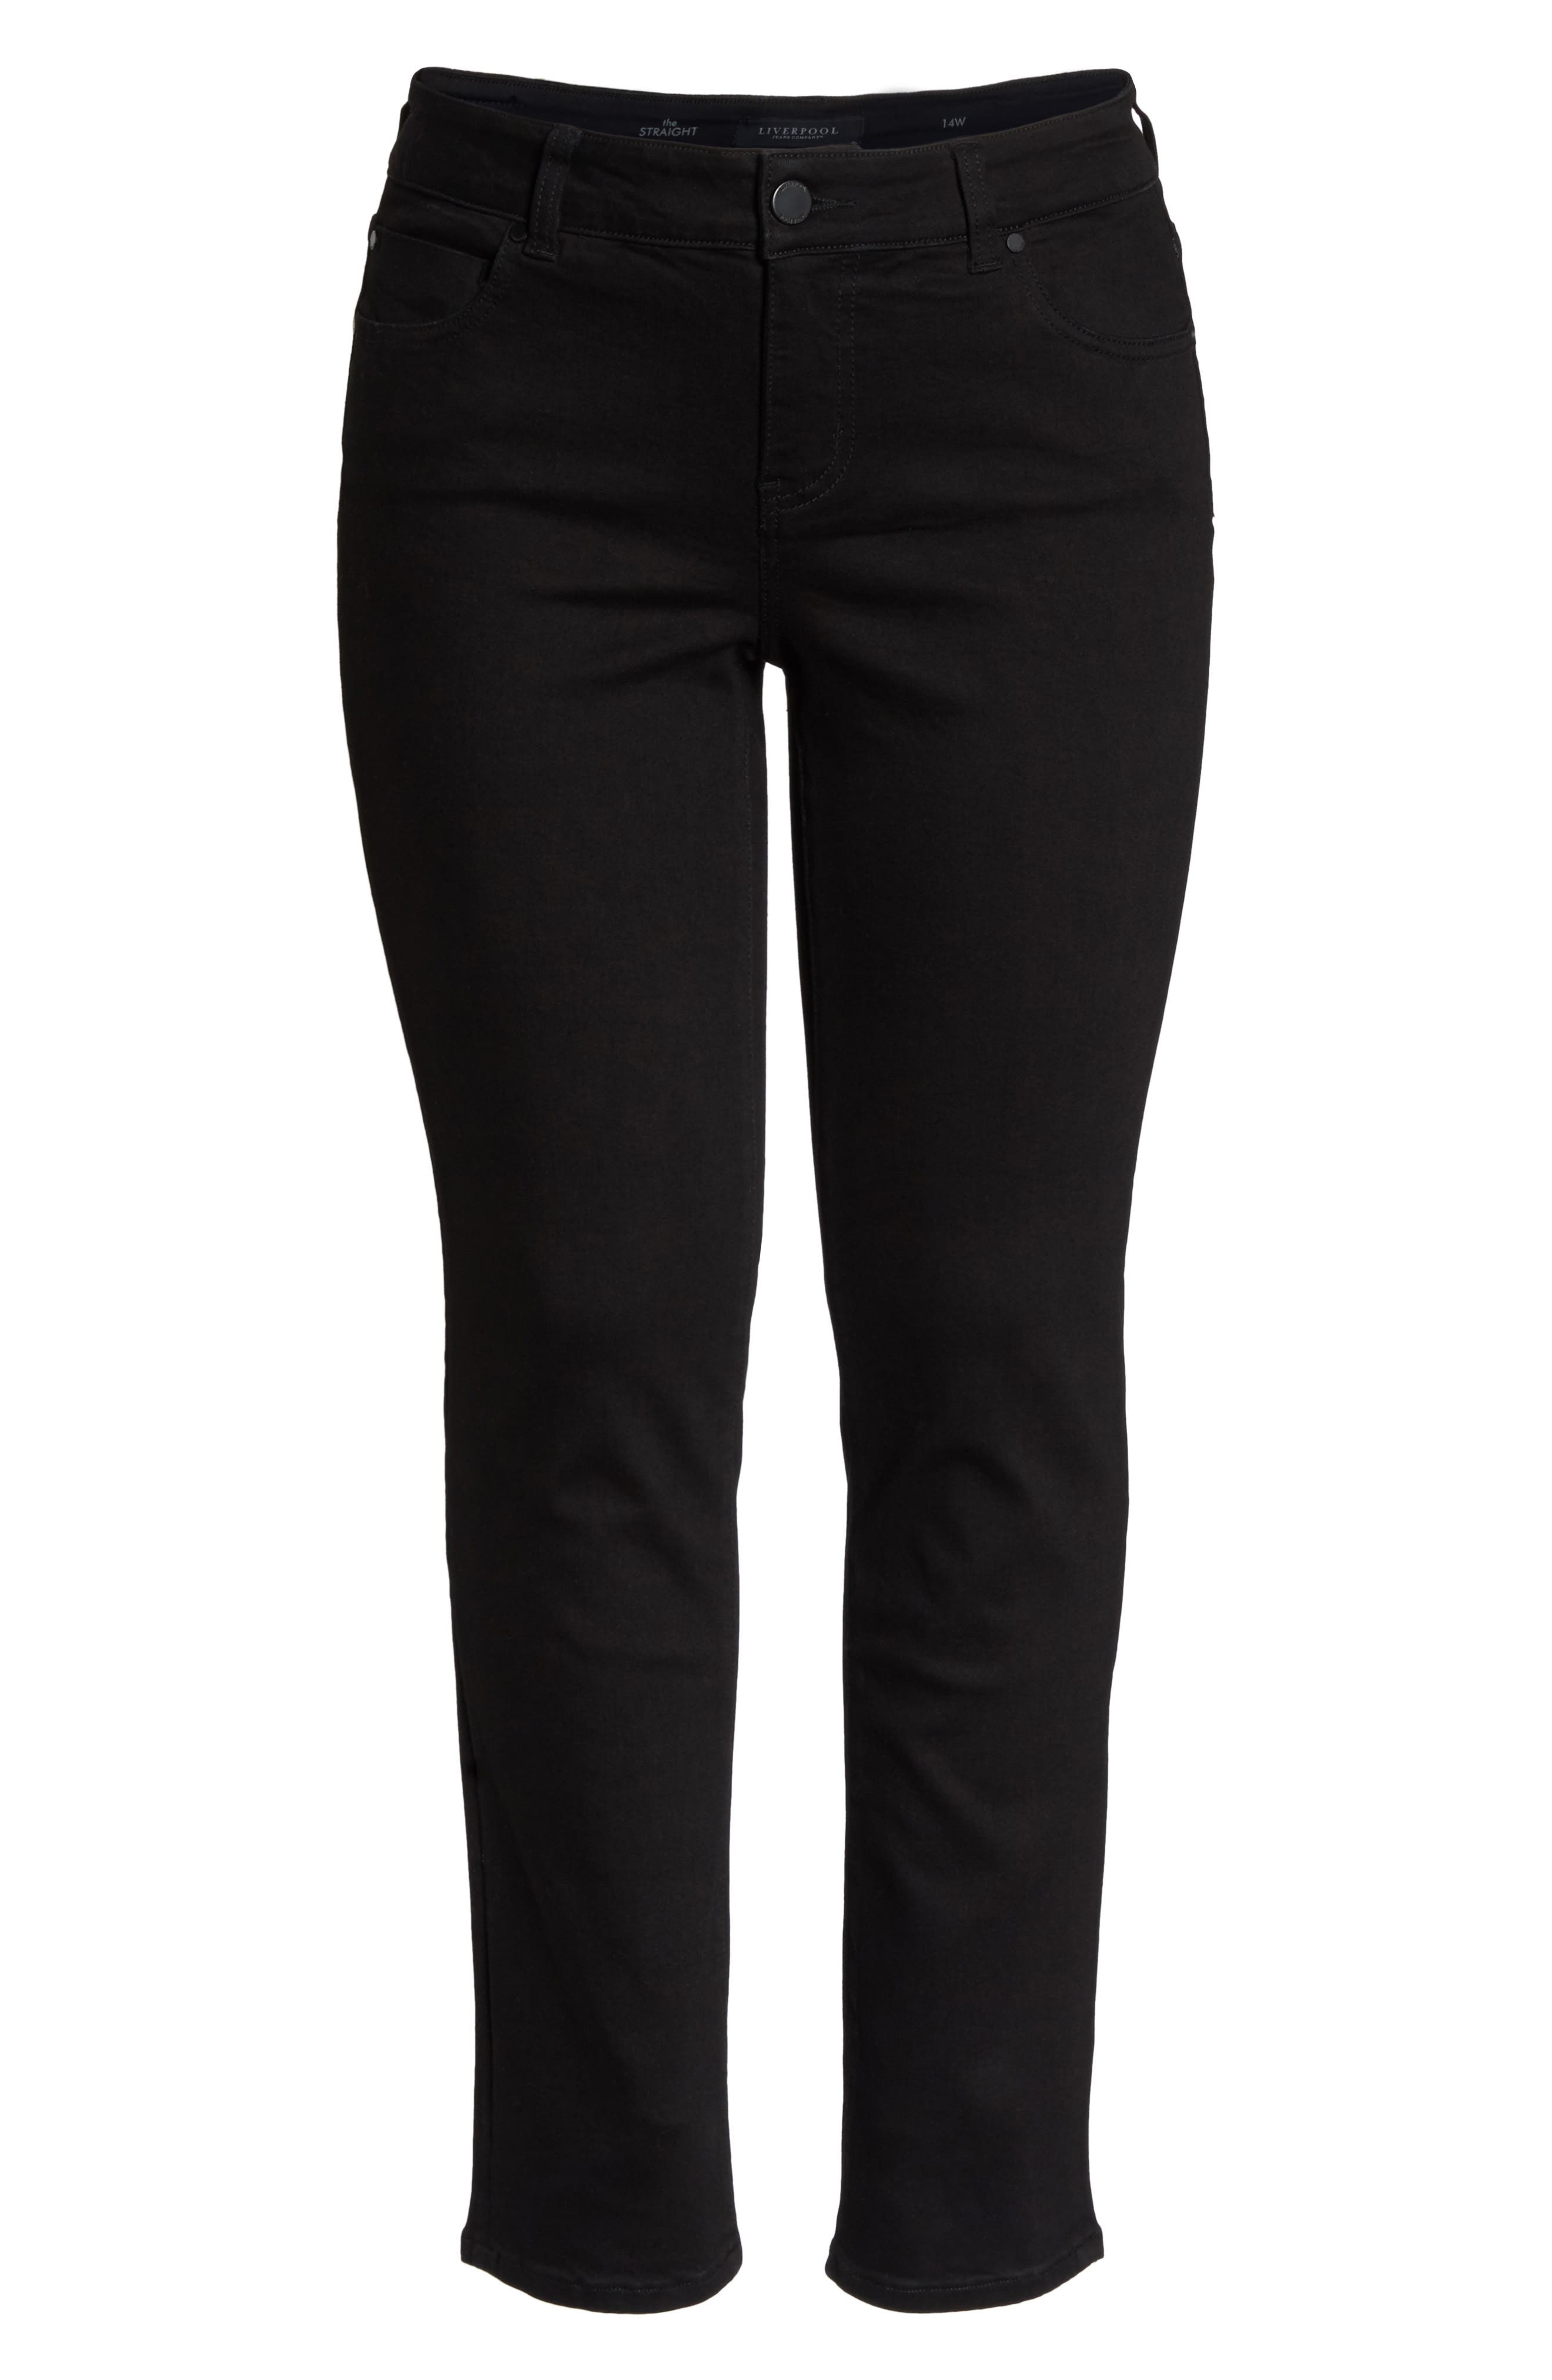 Sadie Stretch Straight Jeans,                             Alternate thumbnail 7, color,                             Black Rinse